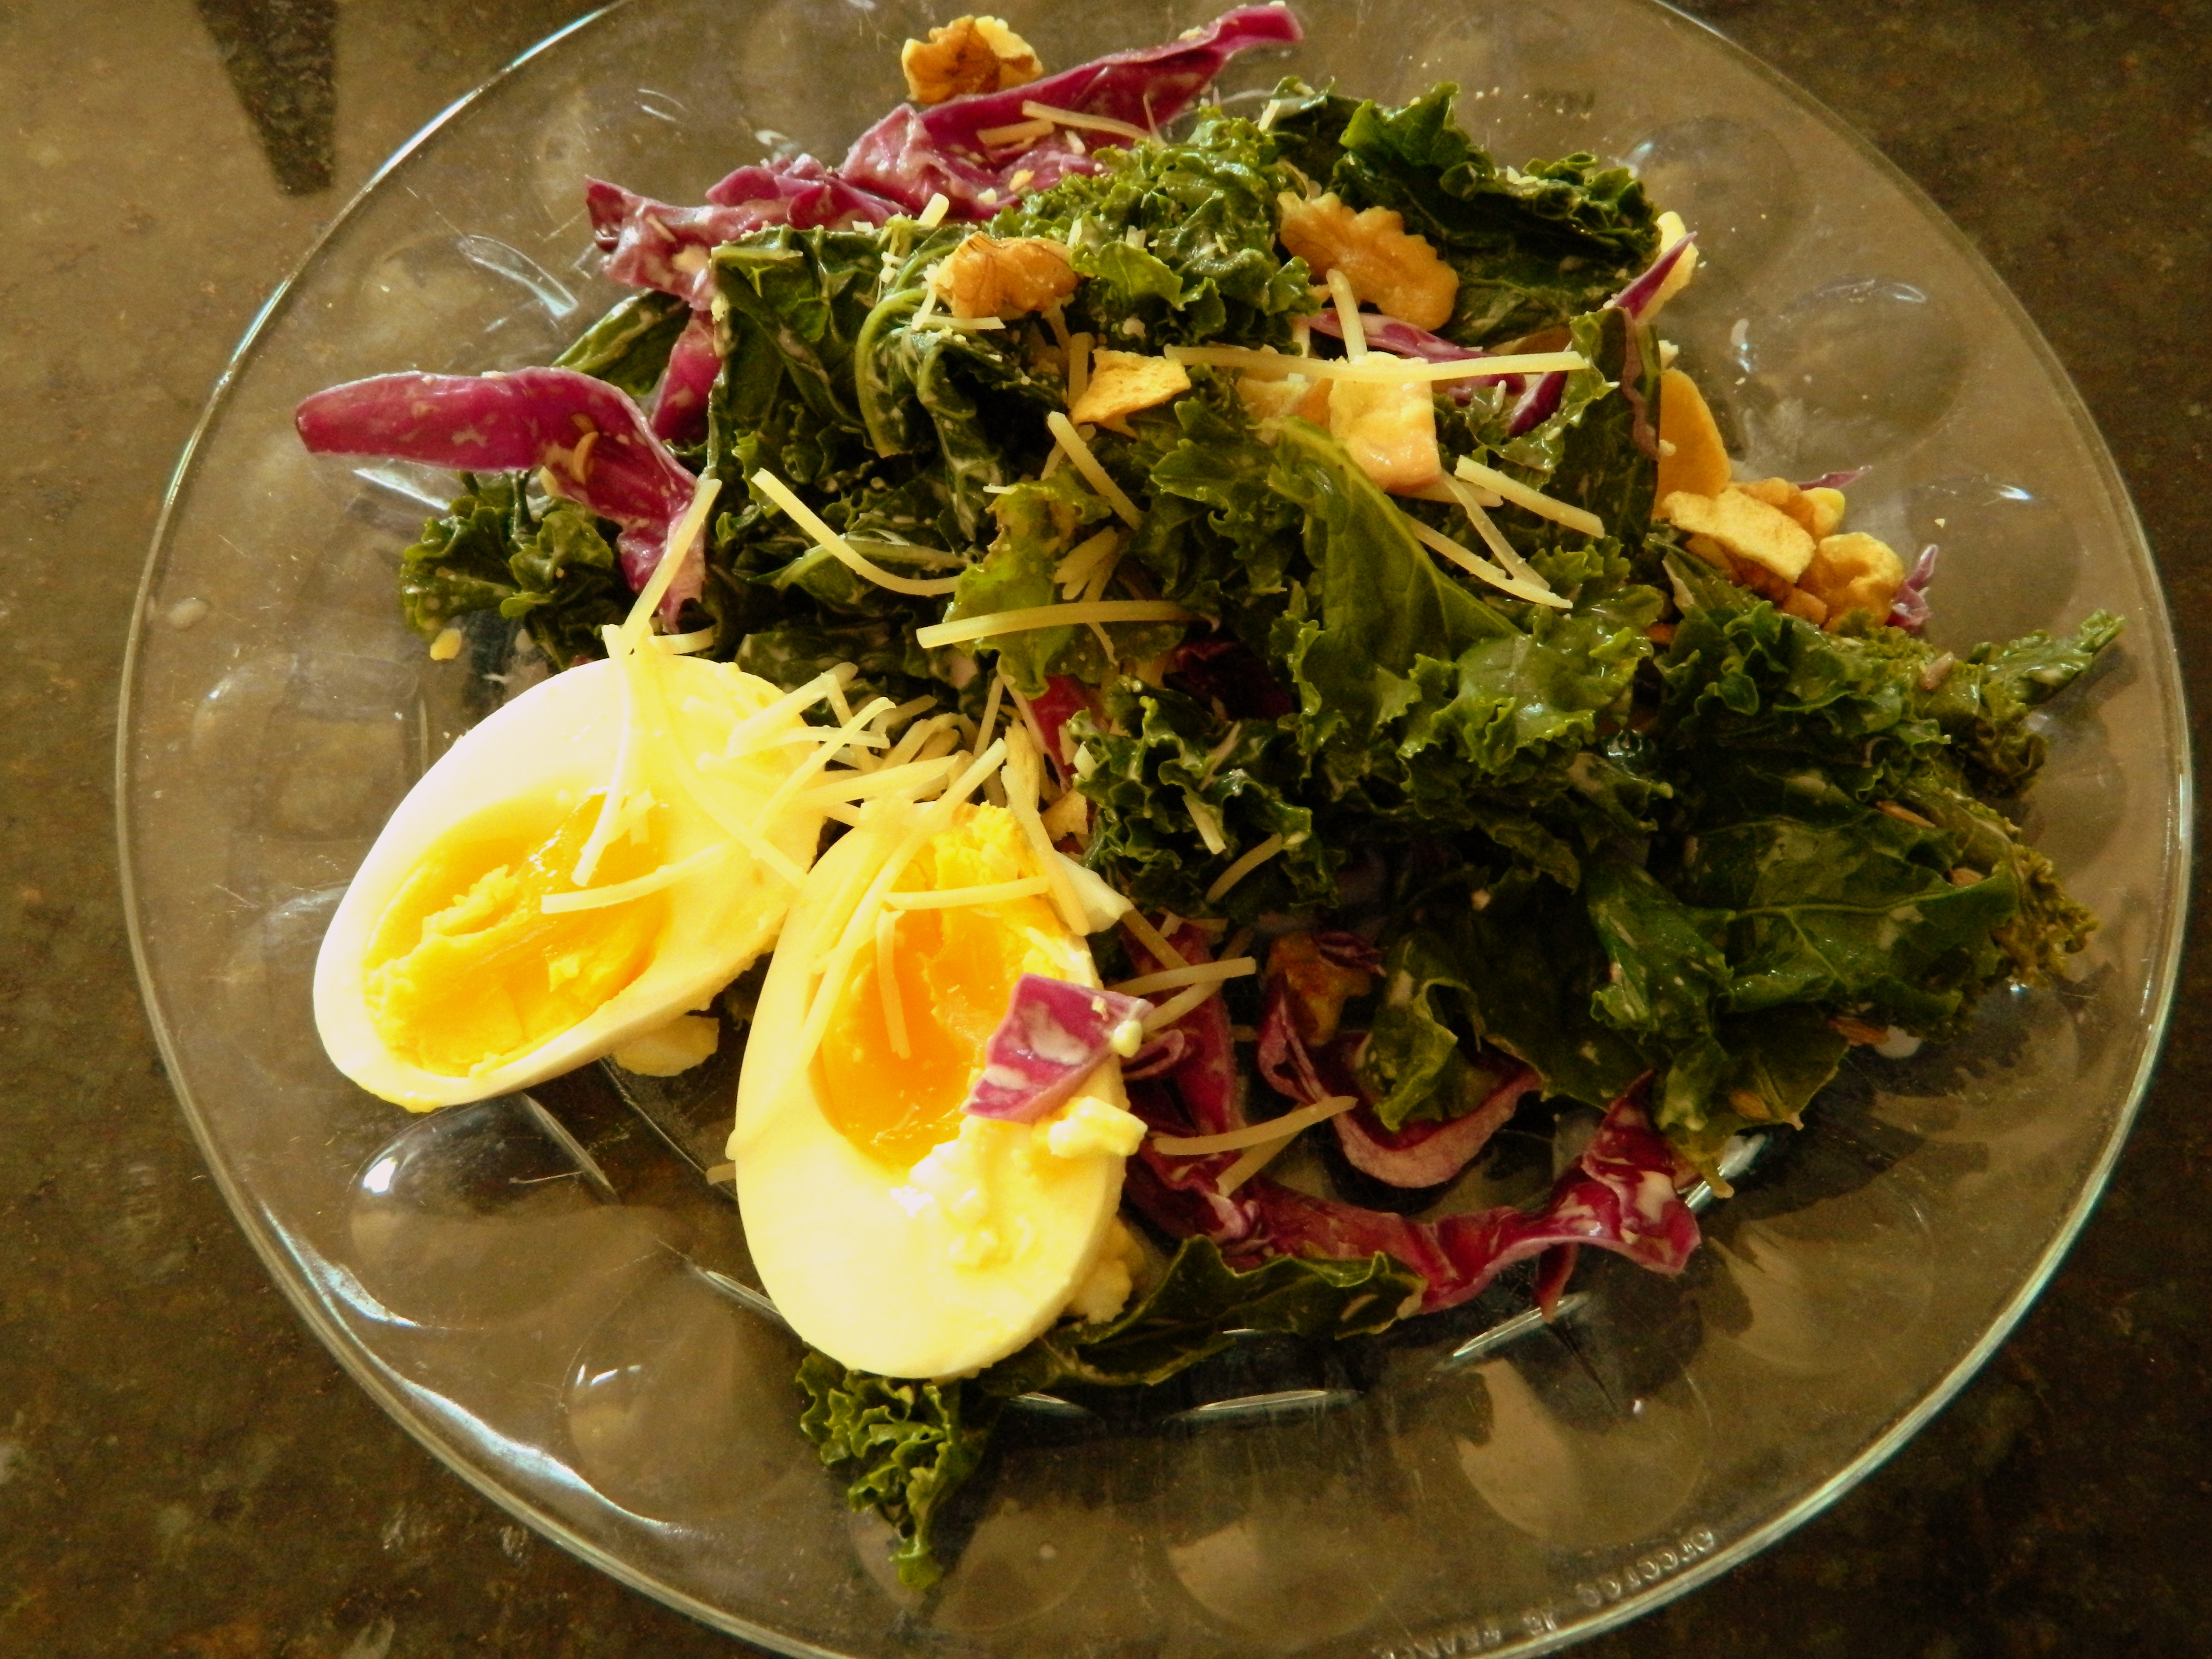 still eating kale and cabbage salad...this time with an egg!